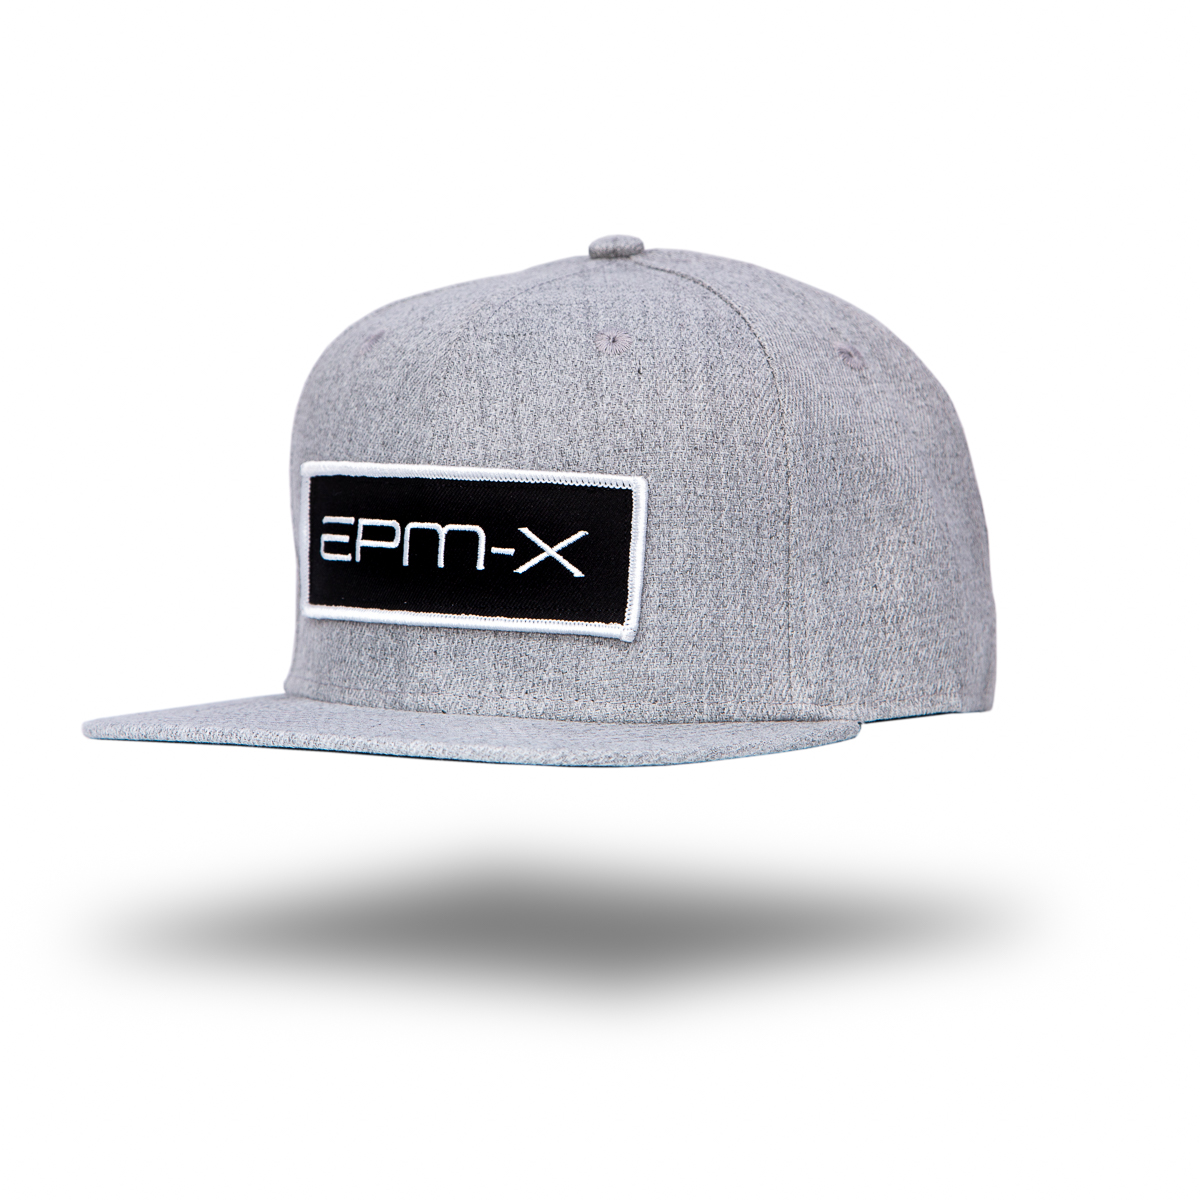 Eat Pray Maui's EPM-X Hat floating style with drop shadow - grey